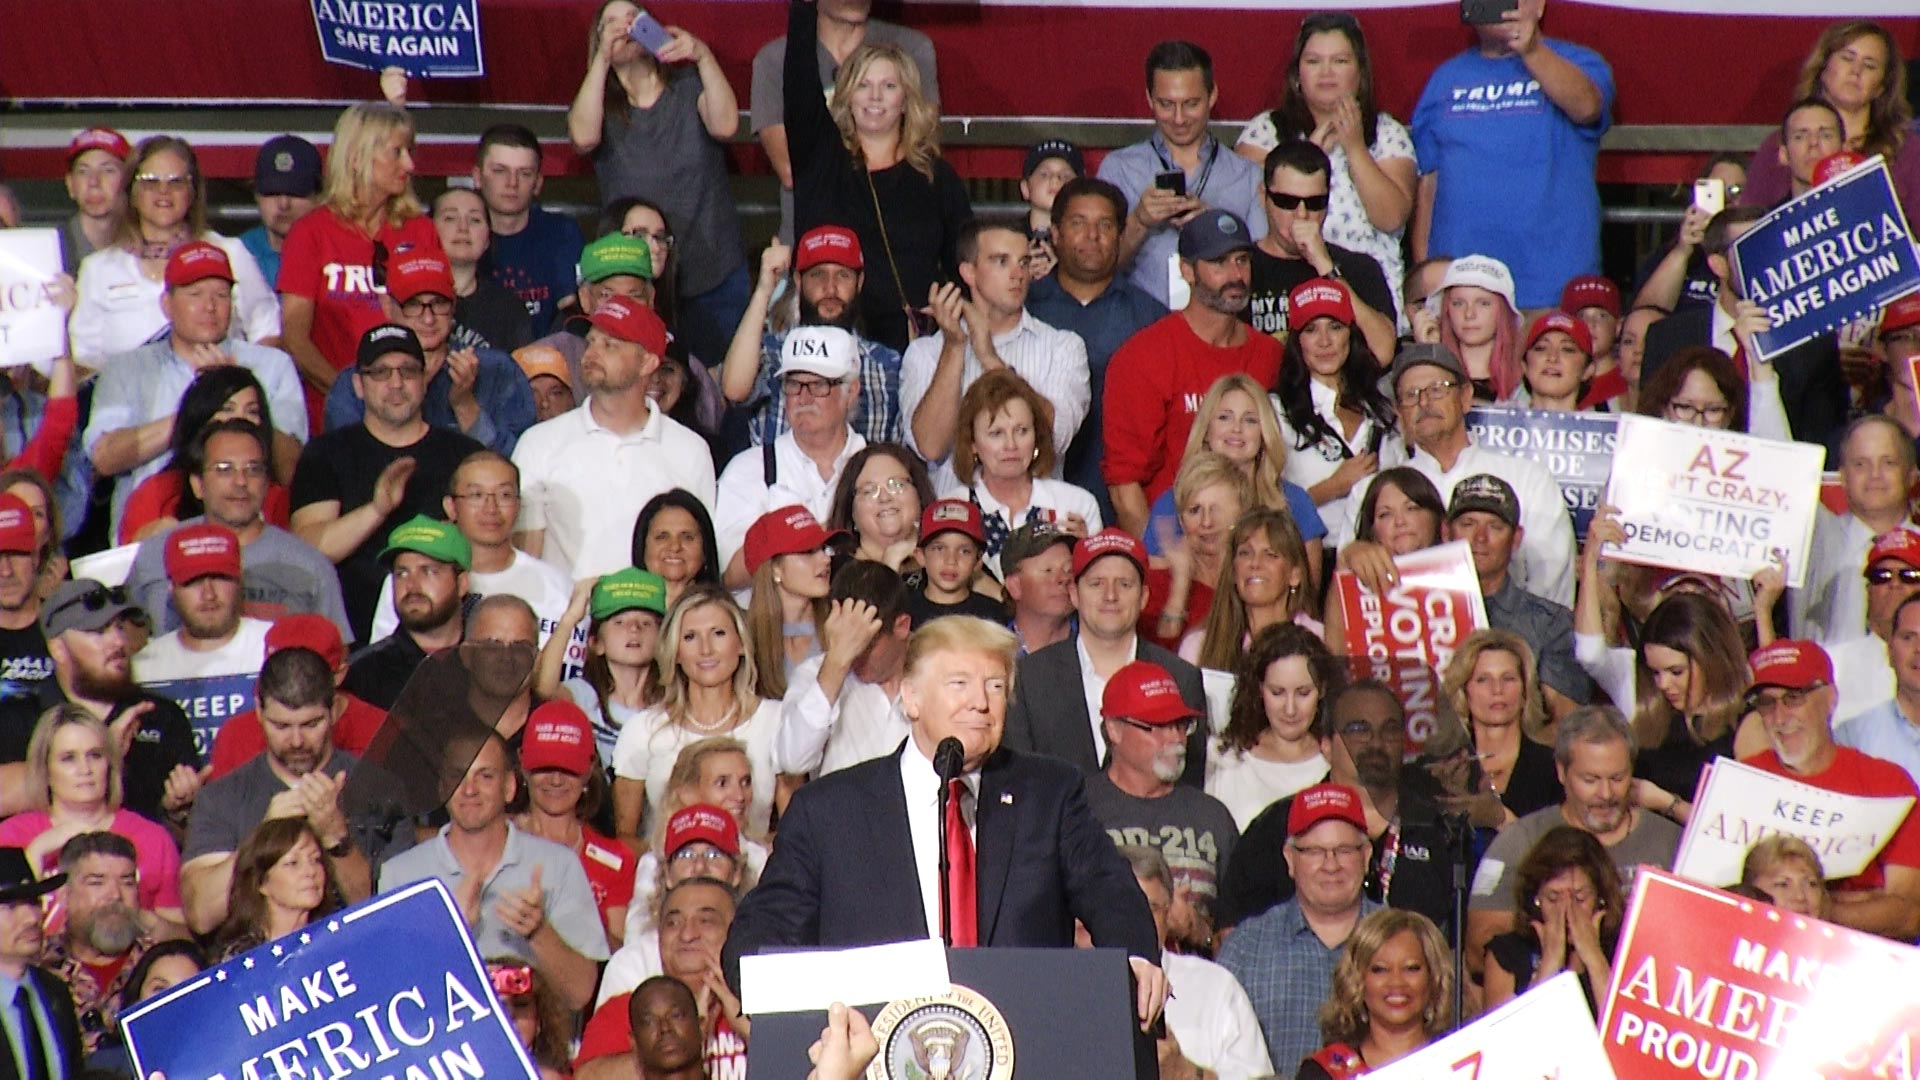 President Donald Trump addresses a crowd at a political rally held at the Phoenix-Mesa Gateway Airport in Mesa on October 19, 2018.